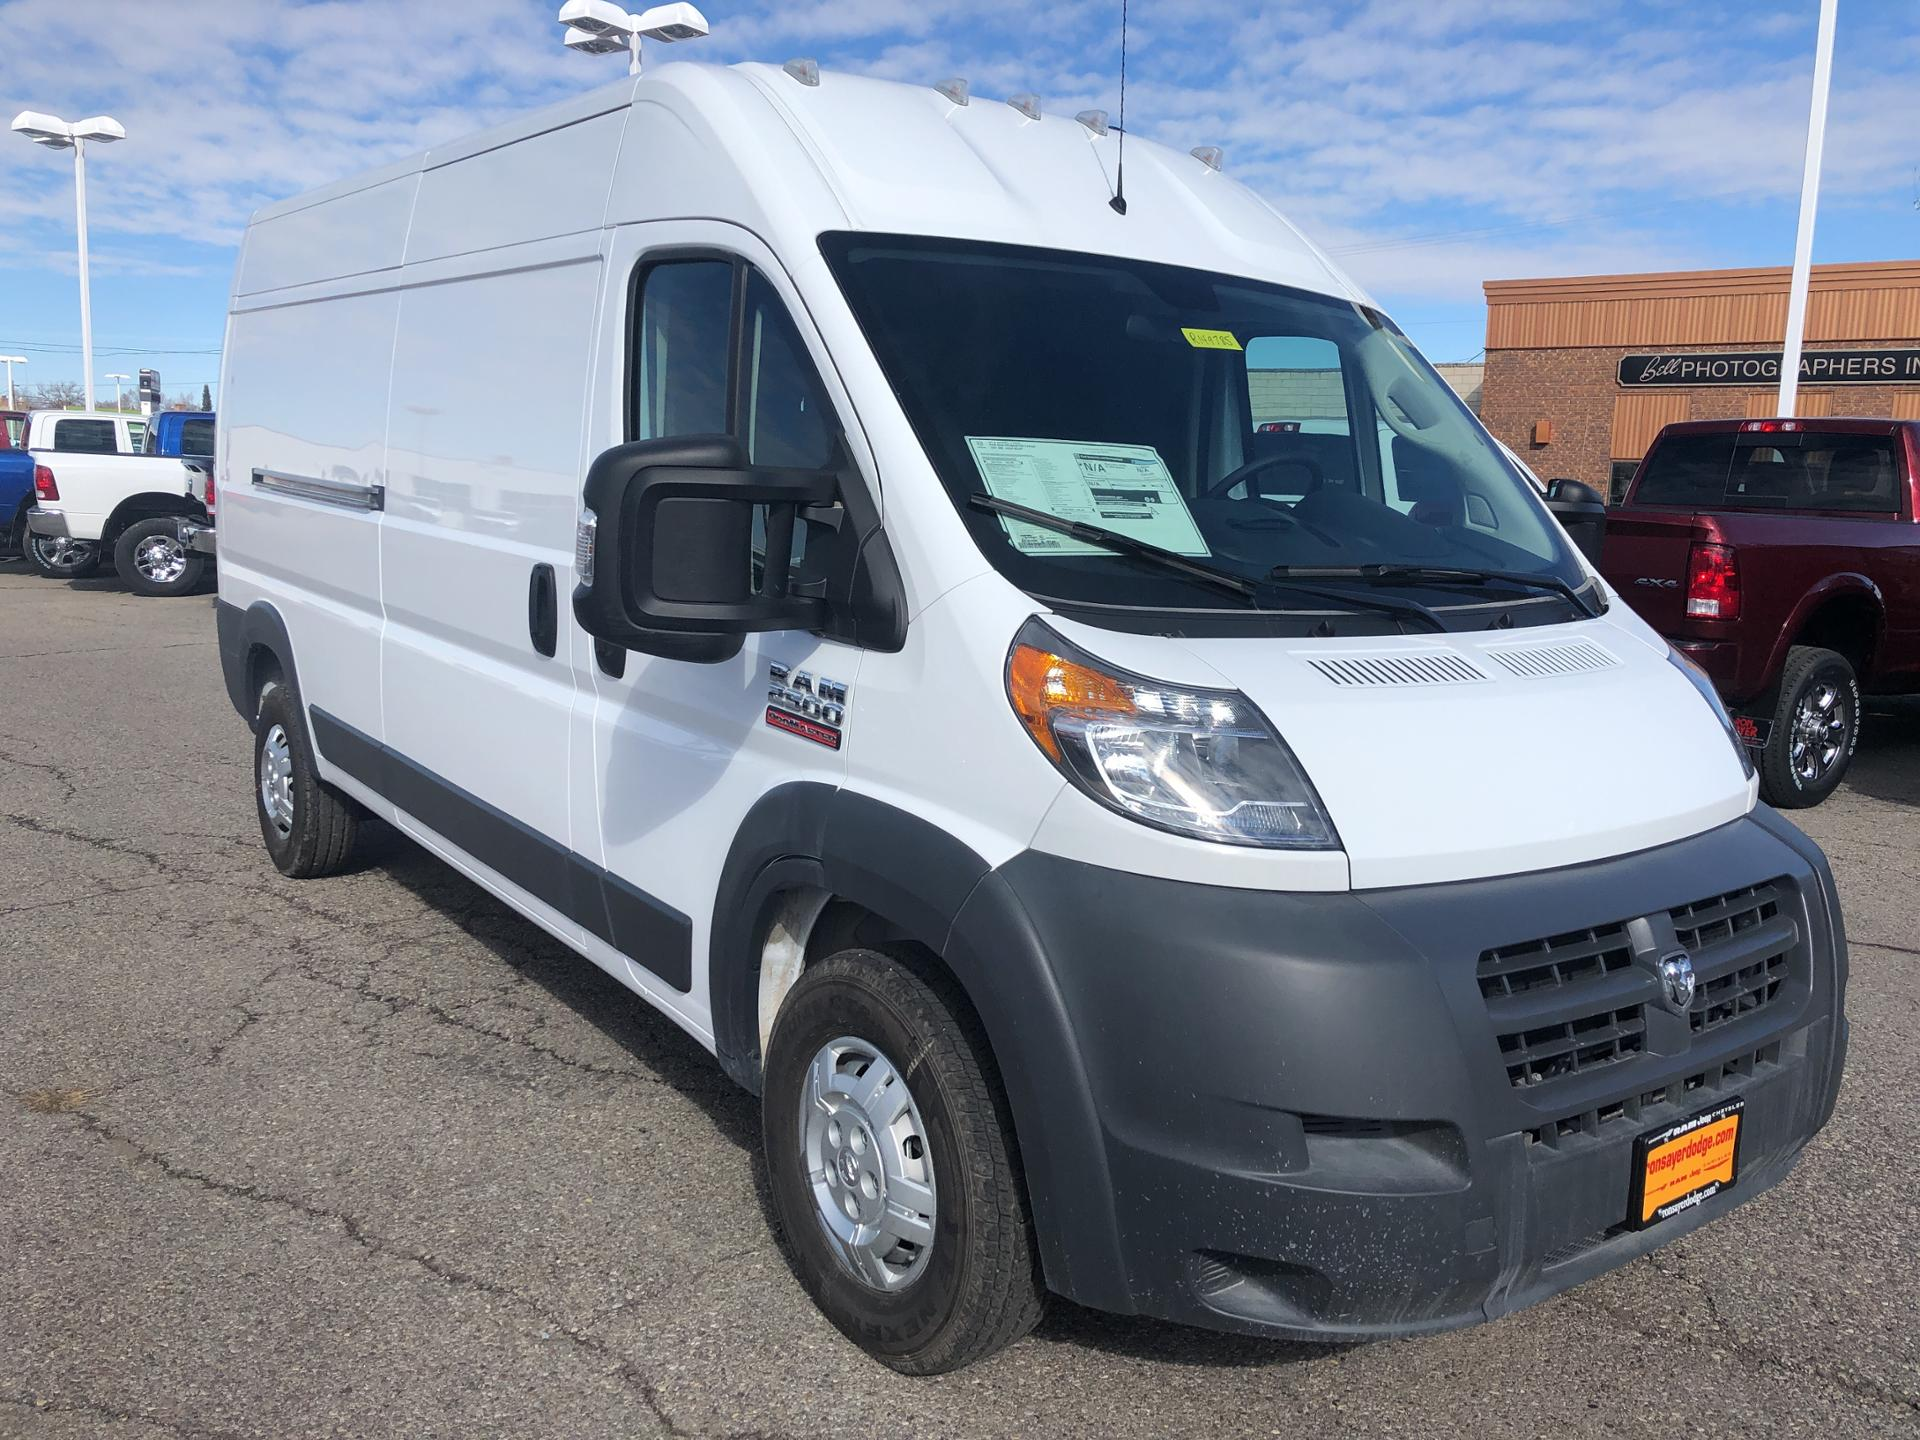 bd4a541c19 New 2018 RAM ProMaster High Roof 159